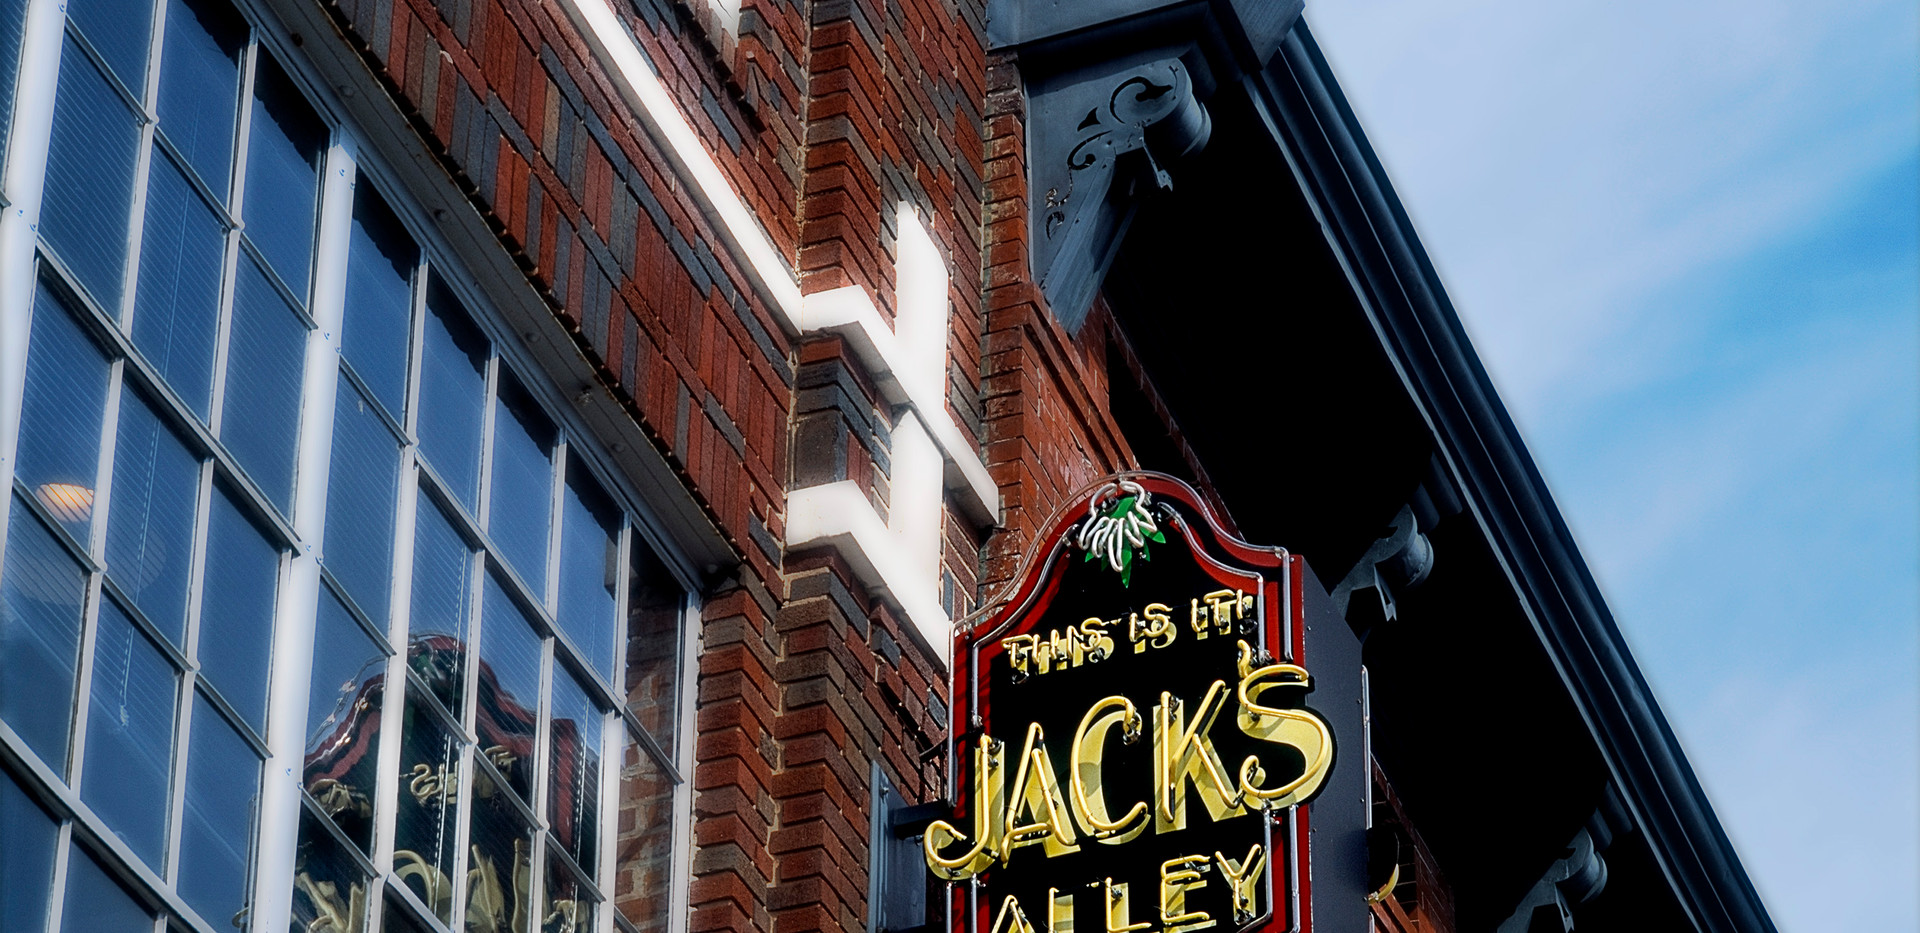 Jacks Alley sign MA2 hc fltn.jpg